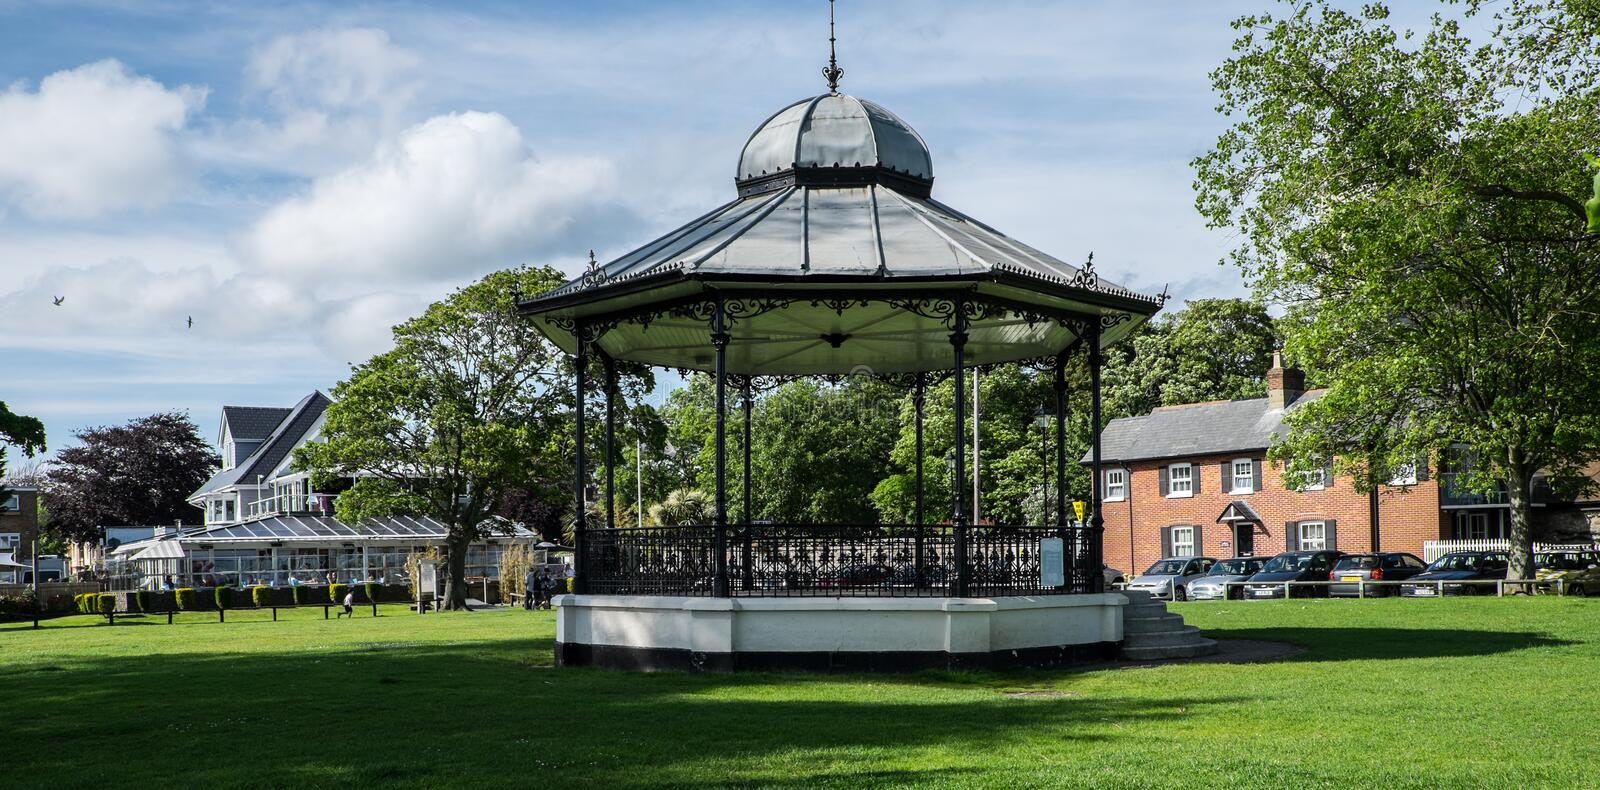 Bandstand, Christchurch obrazy royalty free